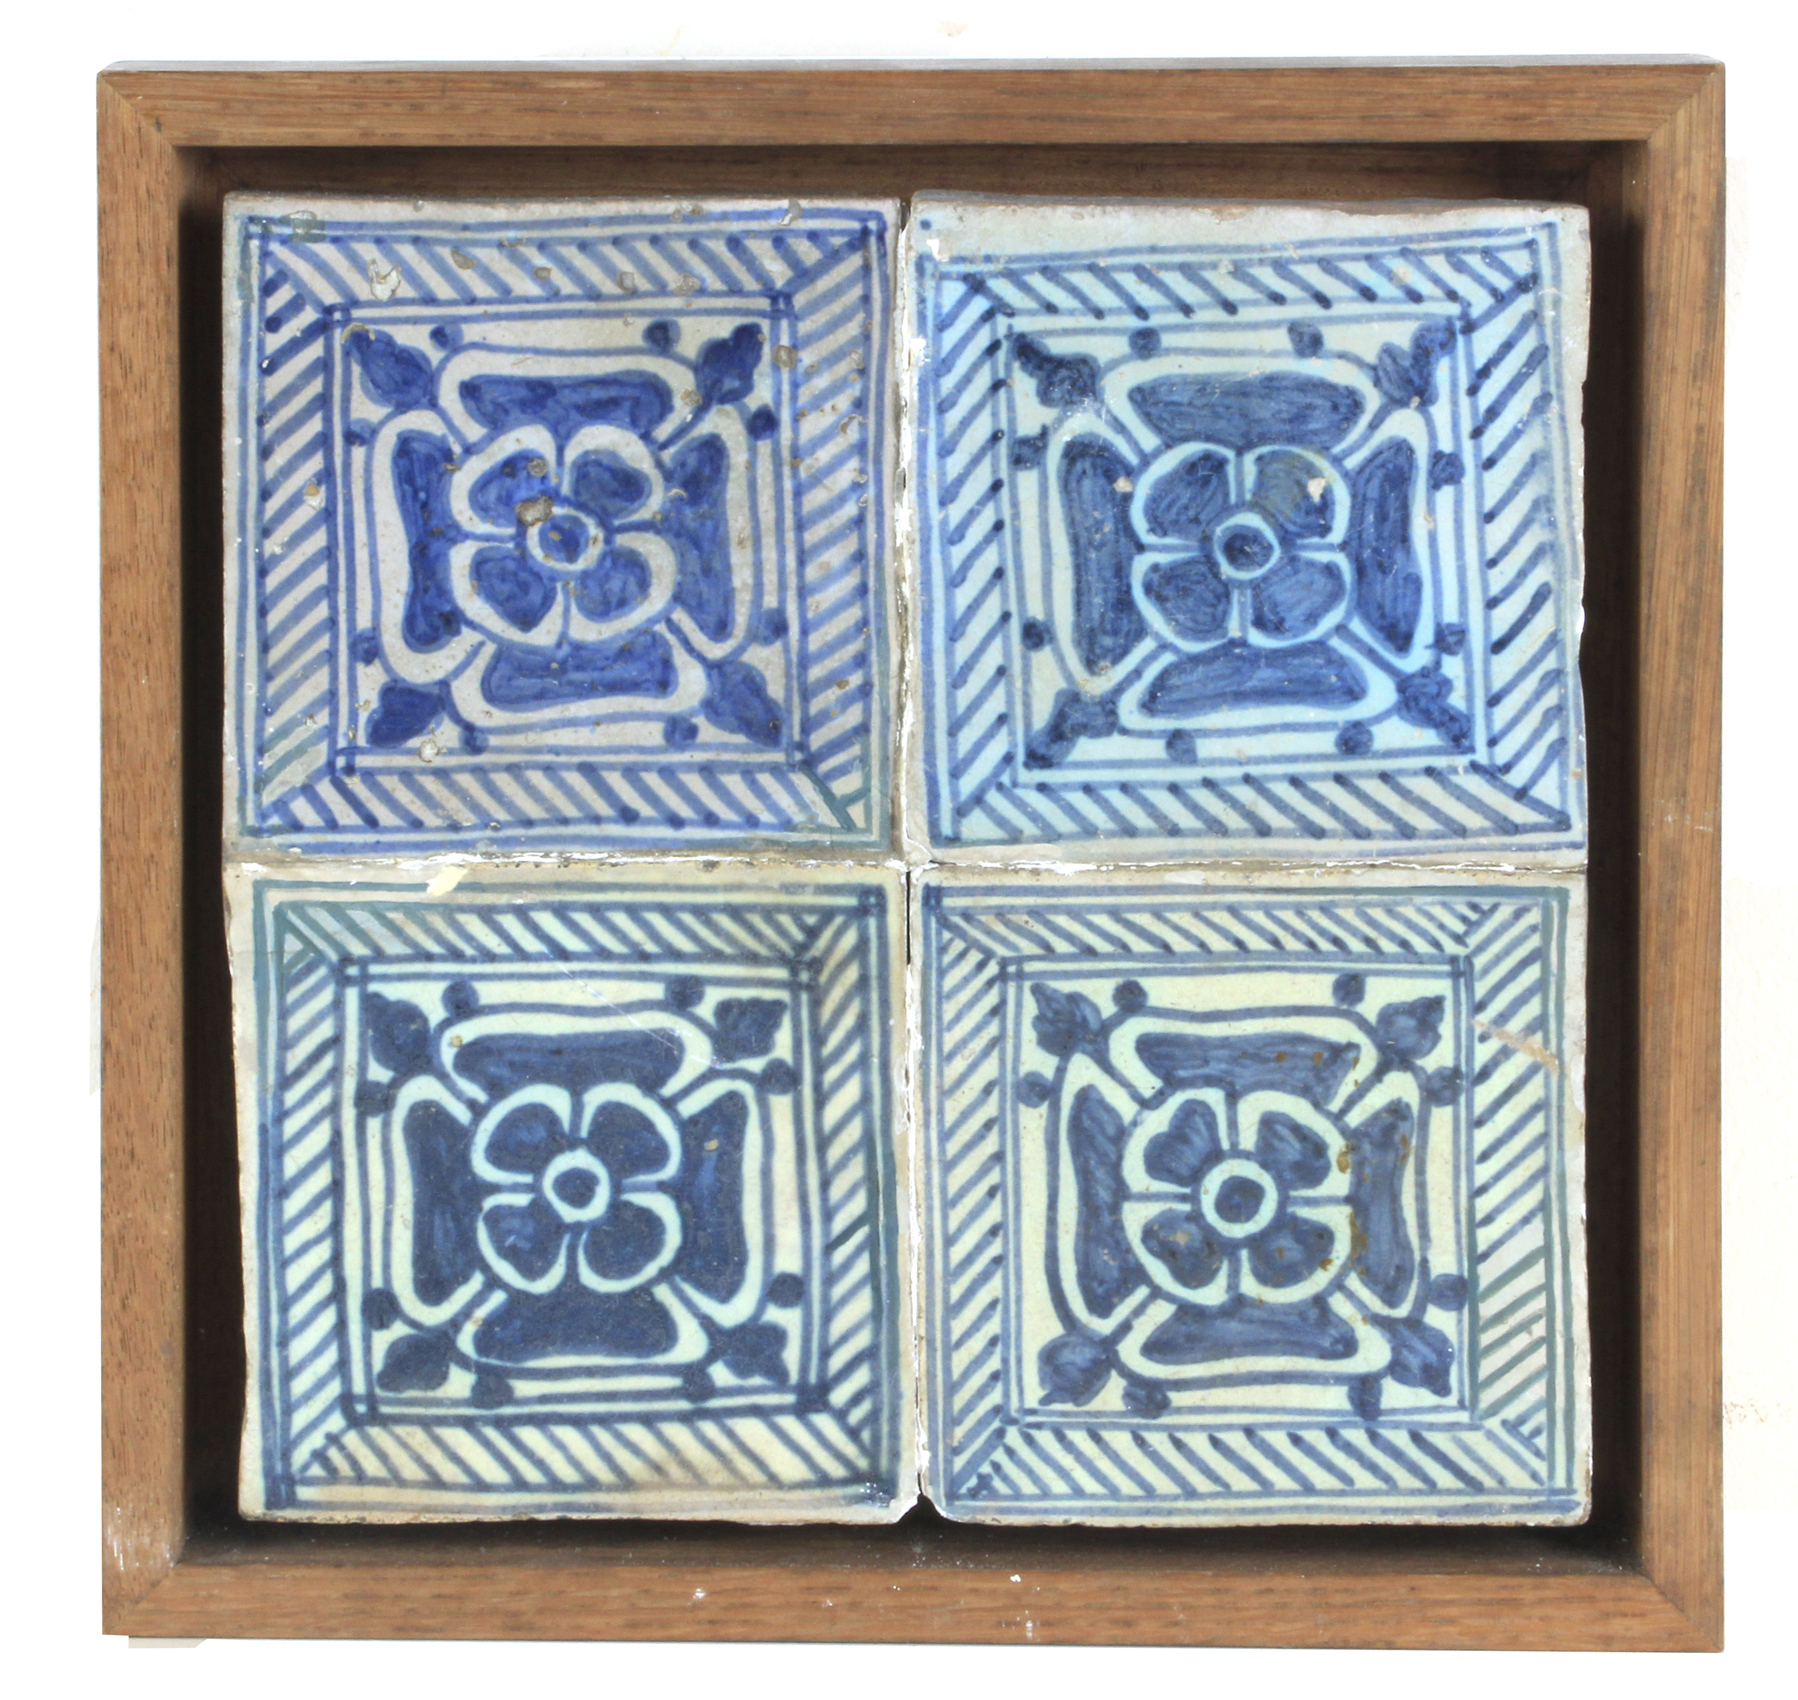 Lot 237 - A 15th-16th centuries plaque with four Gothic Valencian showing tiles